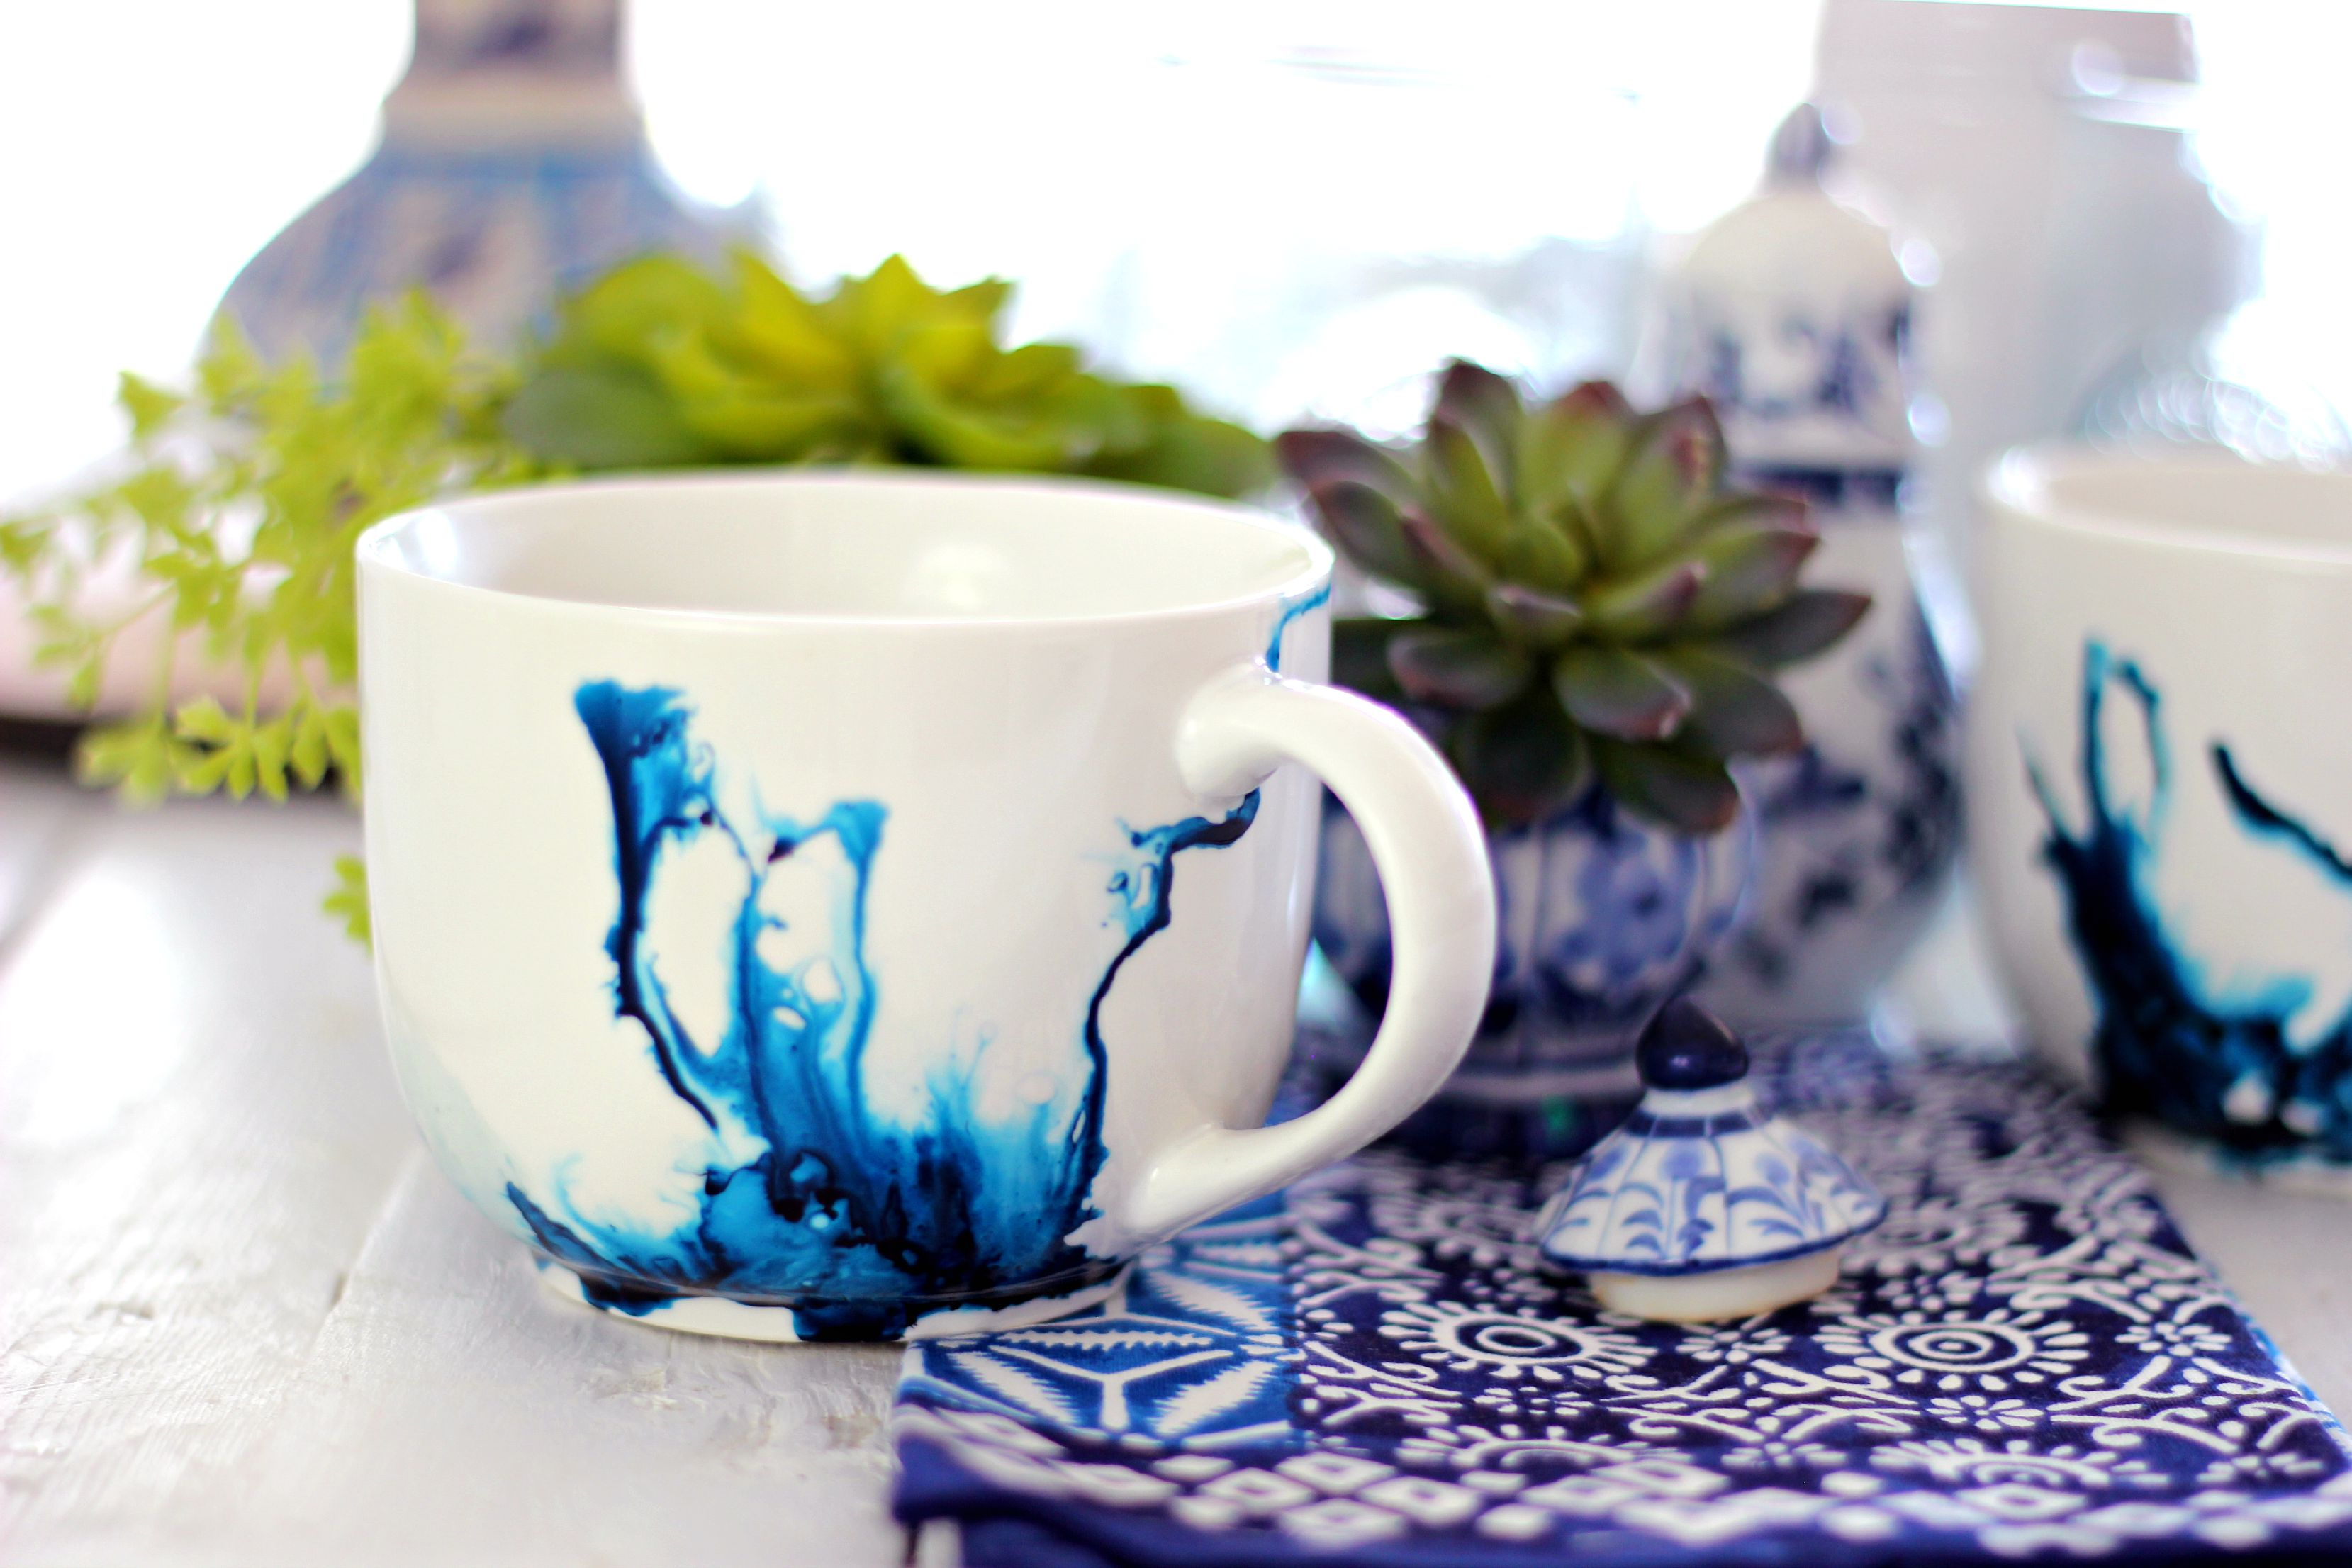 Fullsize Of Beautiful Ceramic Mugs